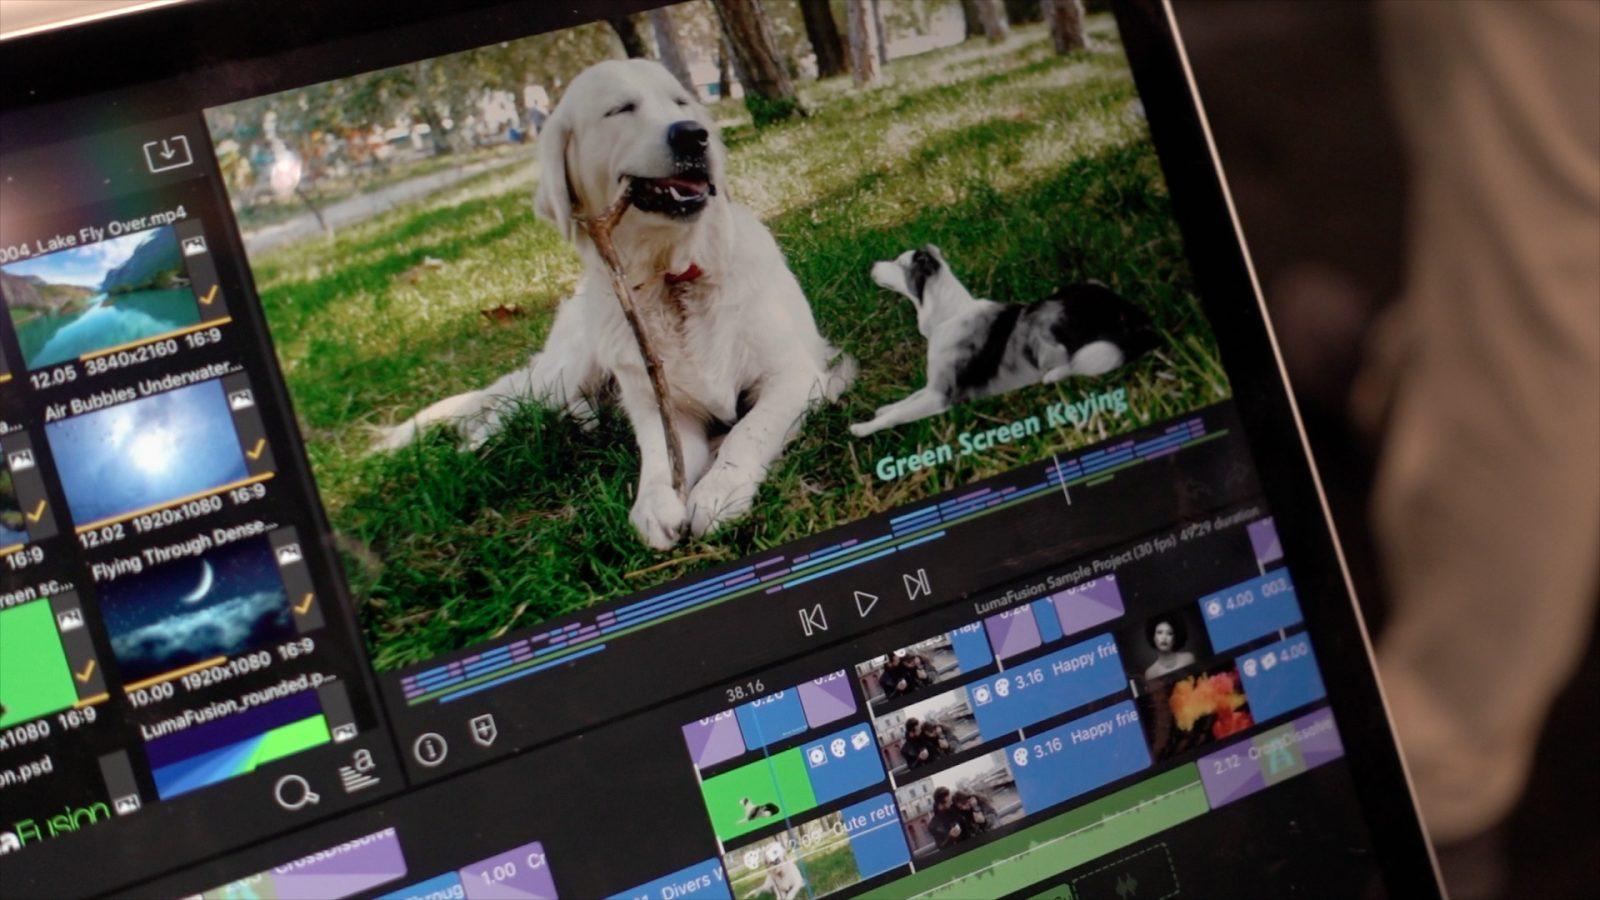 NAB 2019: Luma Fusion, Filmic Pro, and Gnarbox updates - 9to5Mac